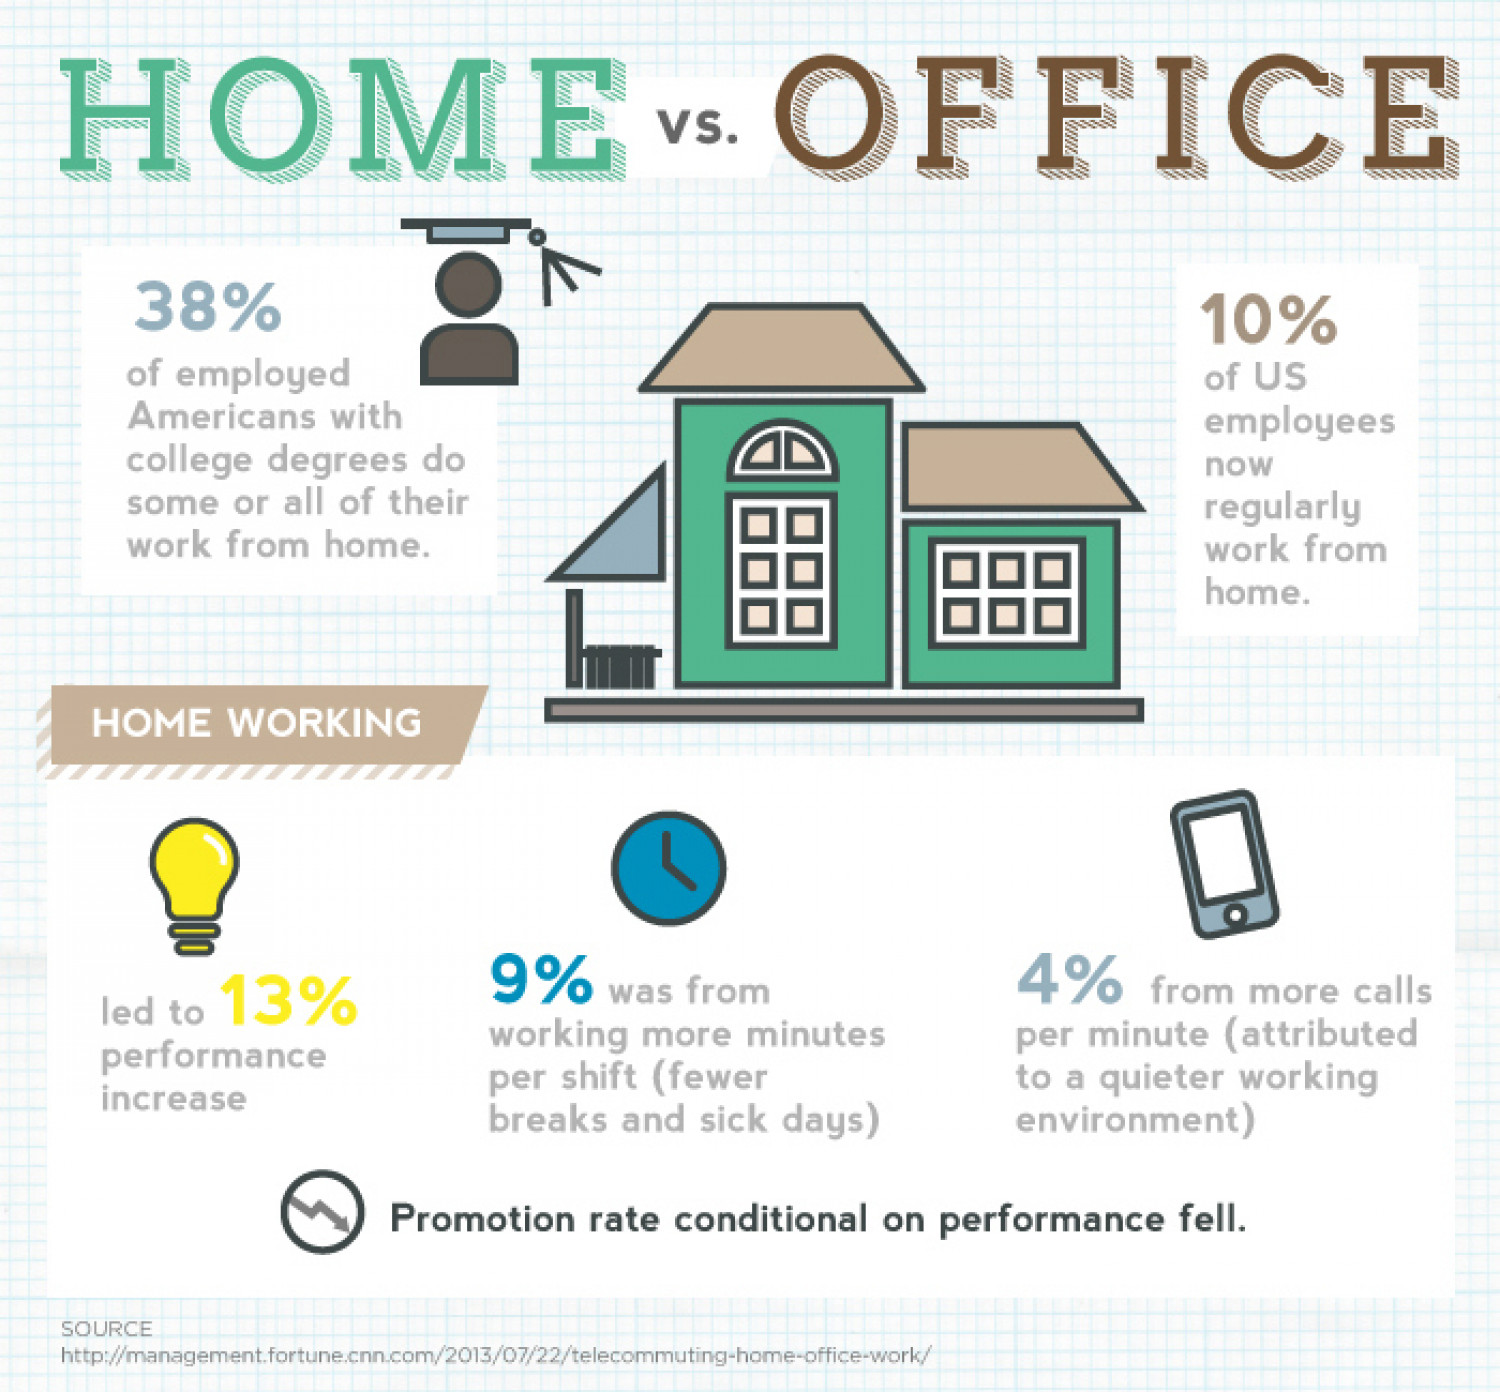 Anatomy of the Perfect Office - Working from Home vs. An Office Infographic